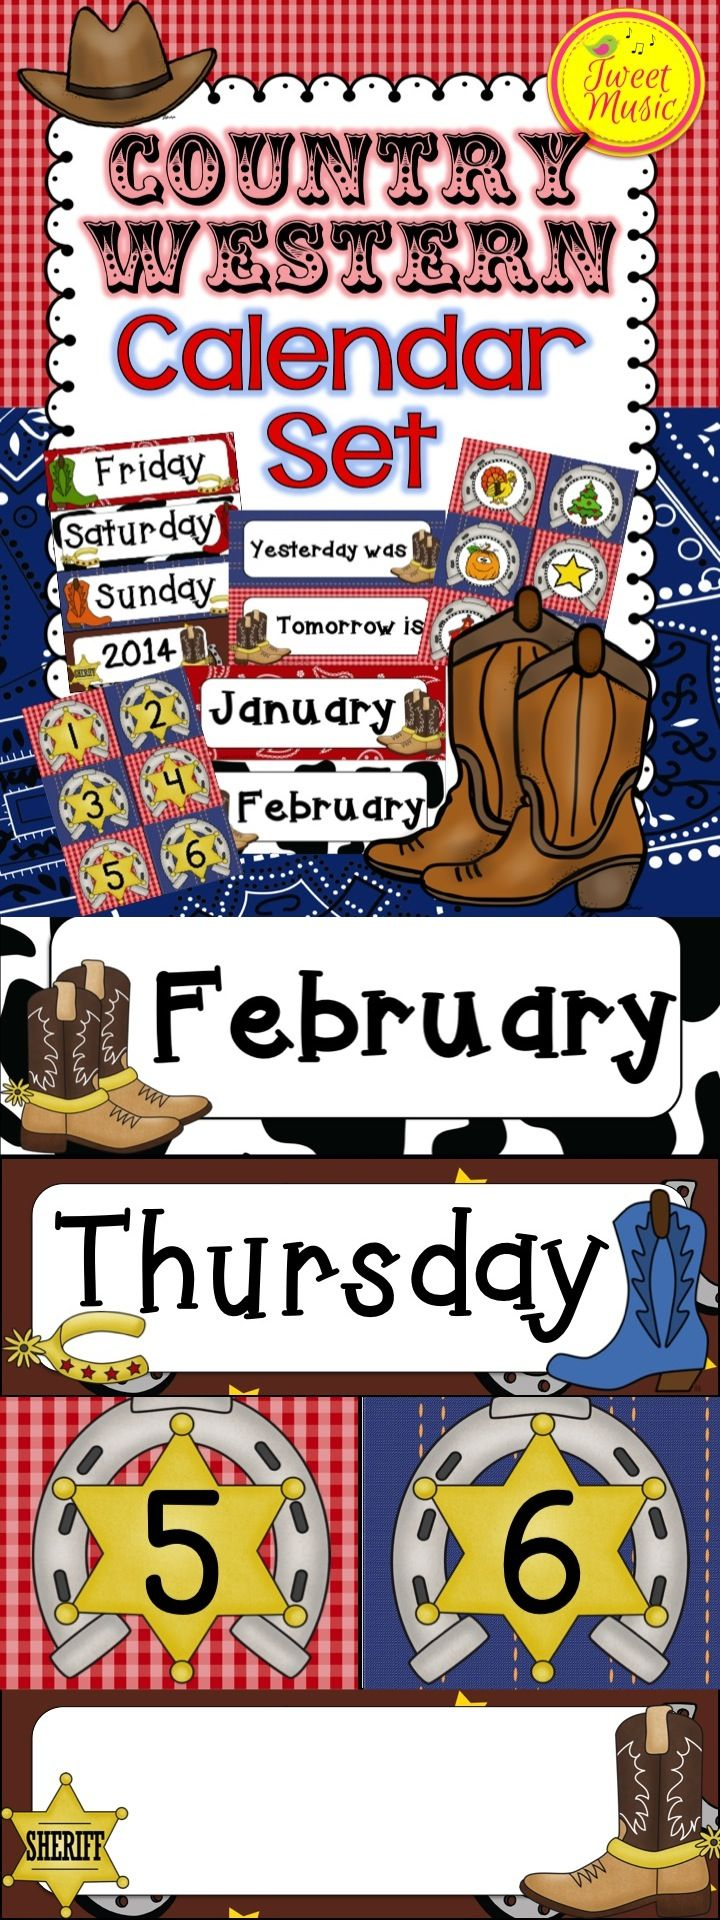 Yeehaw! Decorate your classroom this year with this adorable Country Western themed decor. This calendar set is sold individually and as part of a bundled set. $